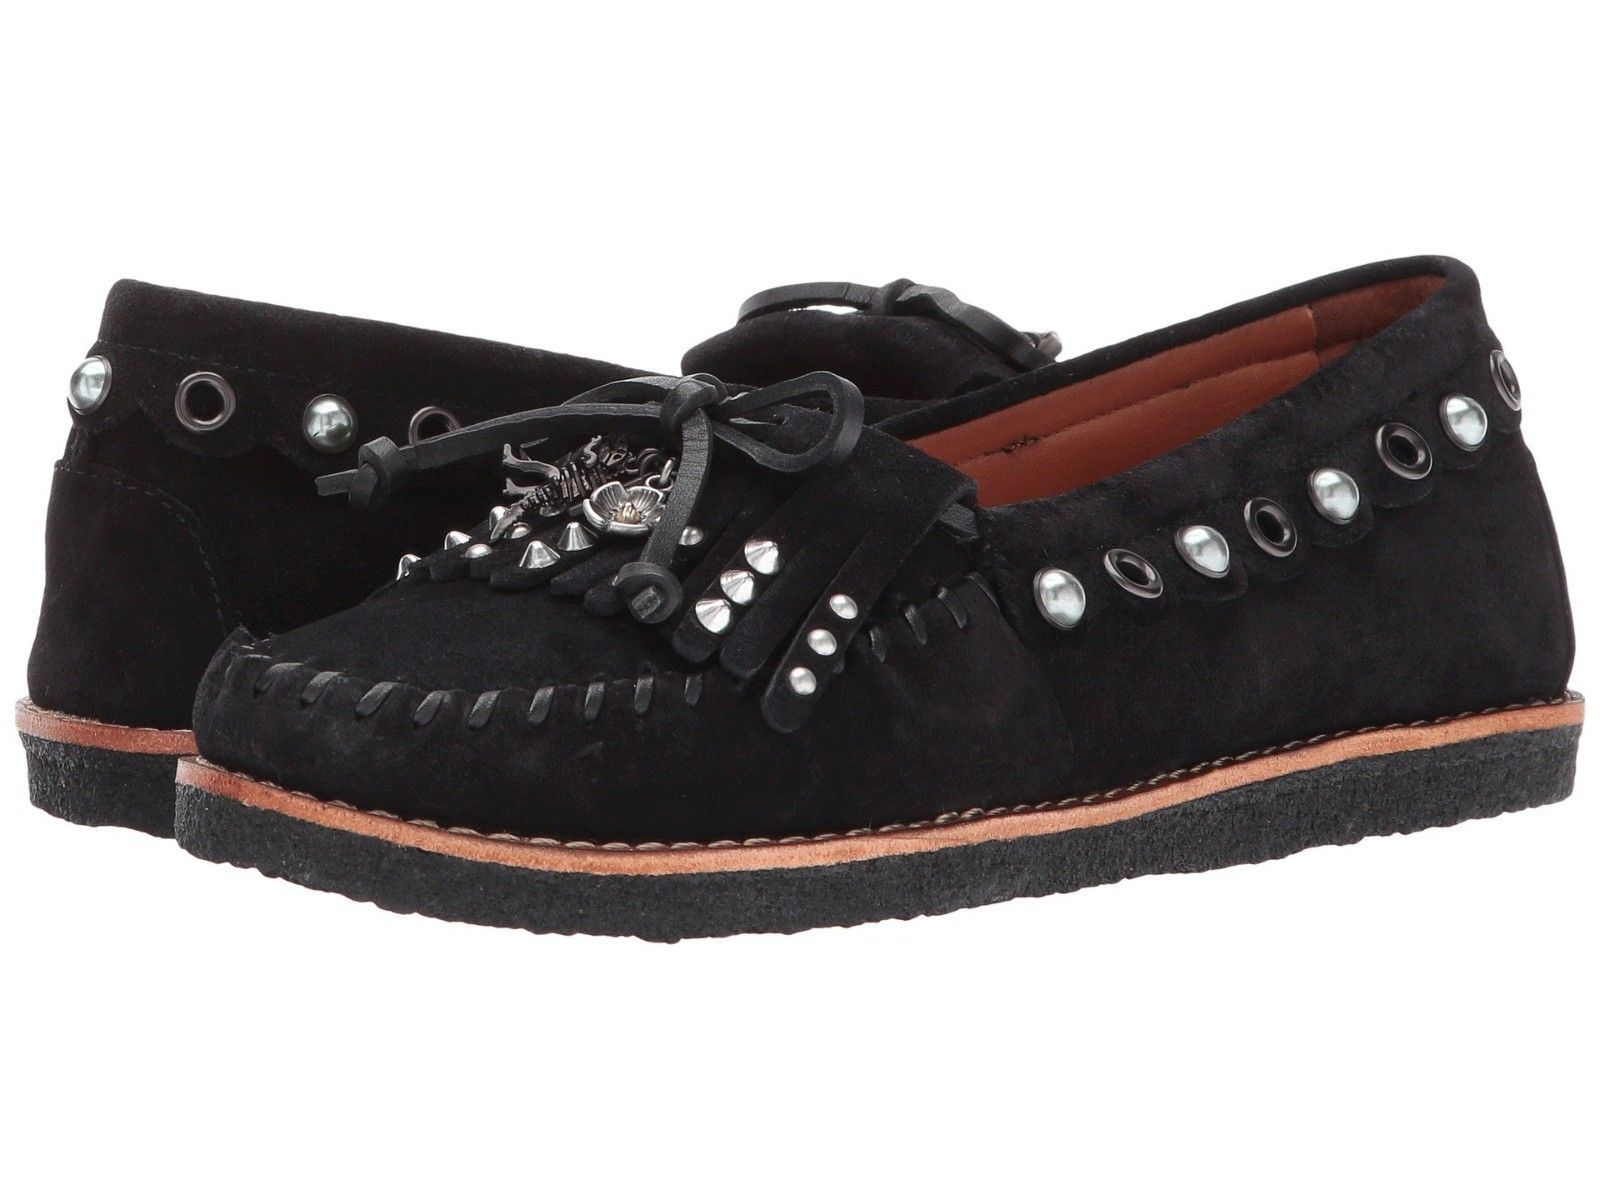 71d94491bc9 Coach Roccasin Embellished Moccasin Shoes Black 6.5 -  179.99